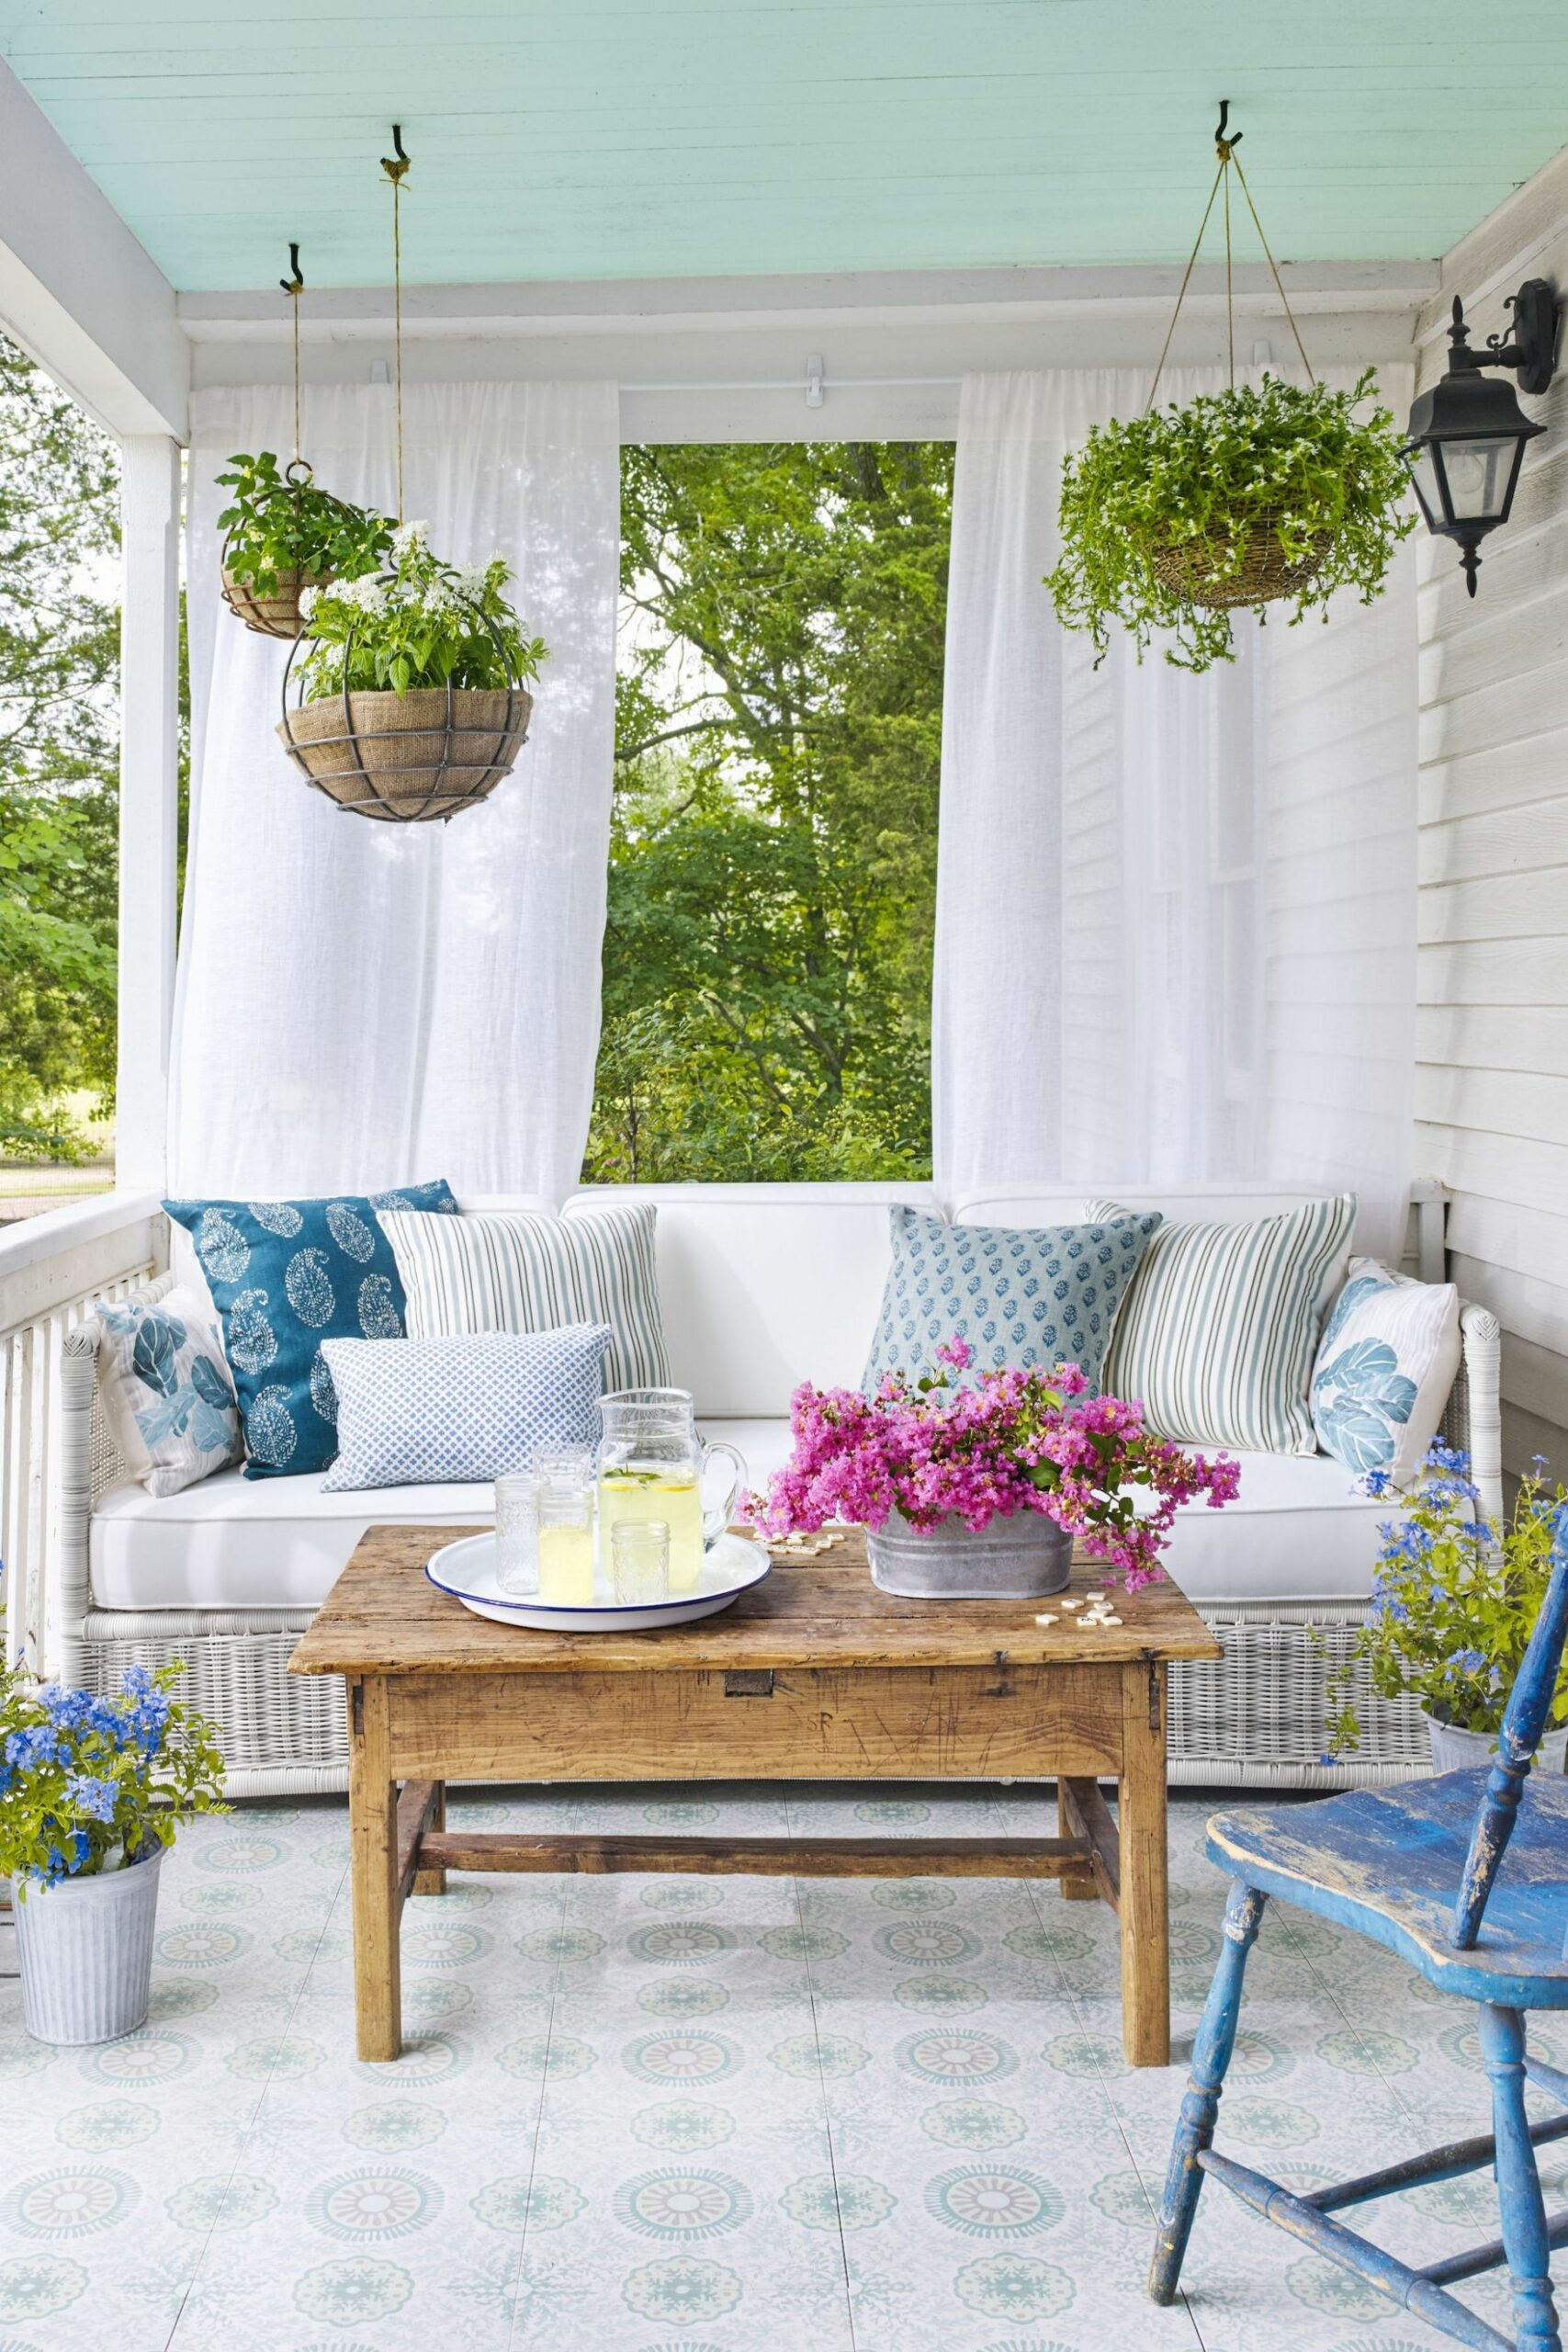 12 Front Porch Ideas - Designs and Decorating Ideas for Your Front ... - front porch ideas